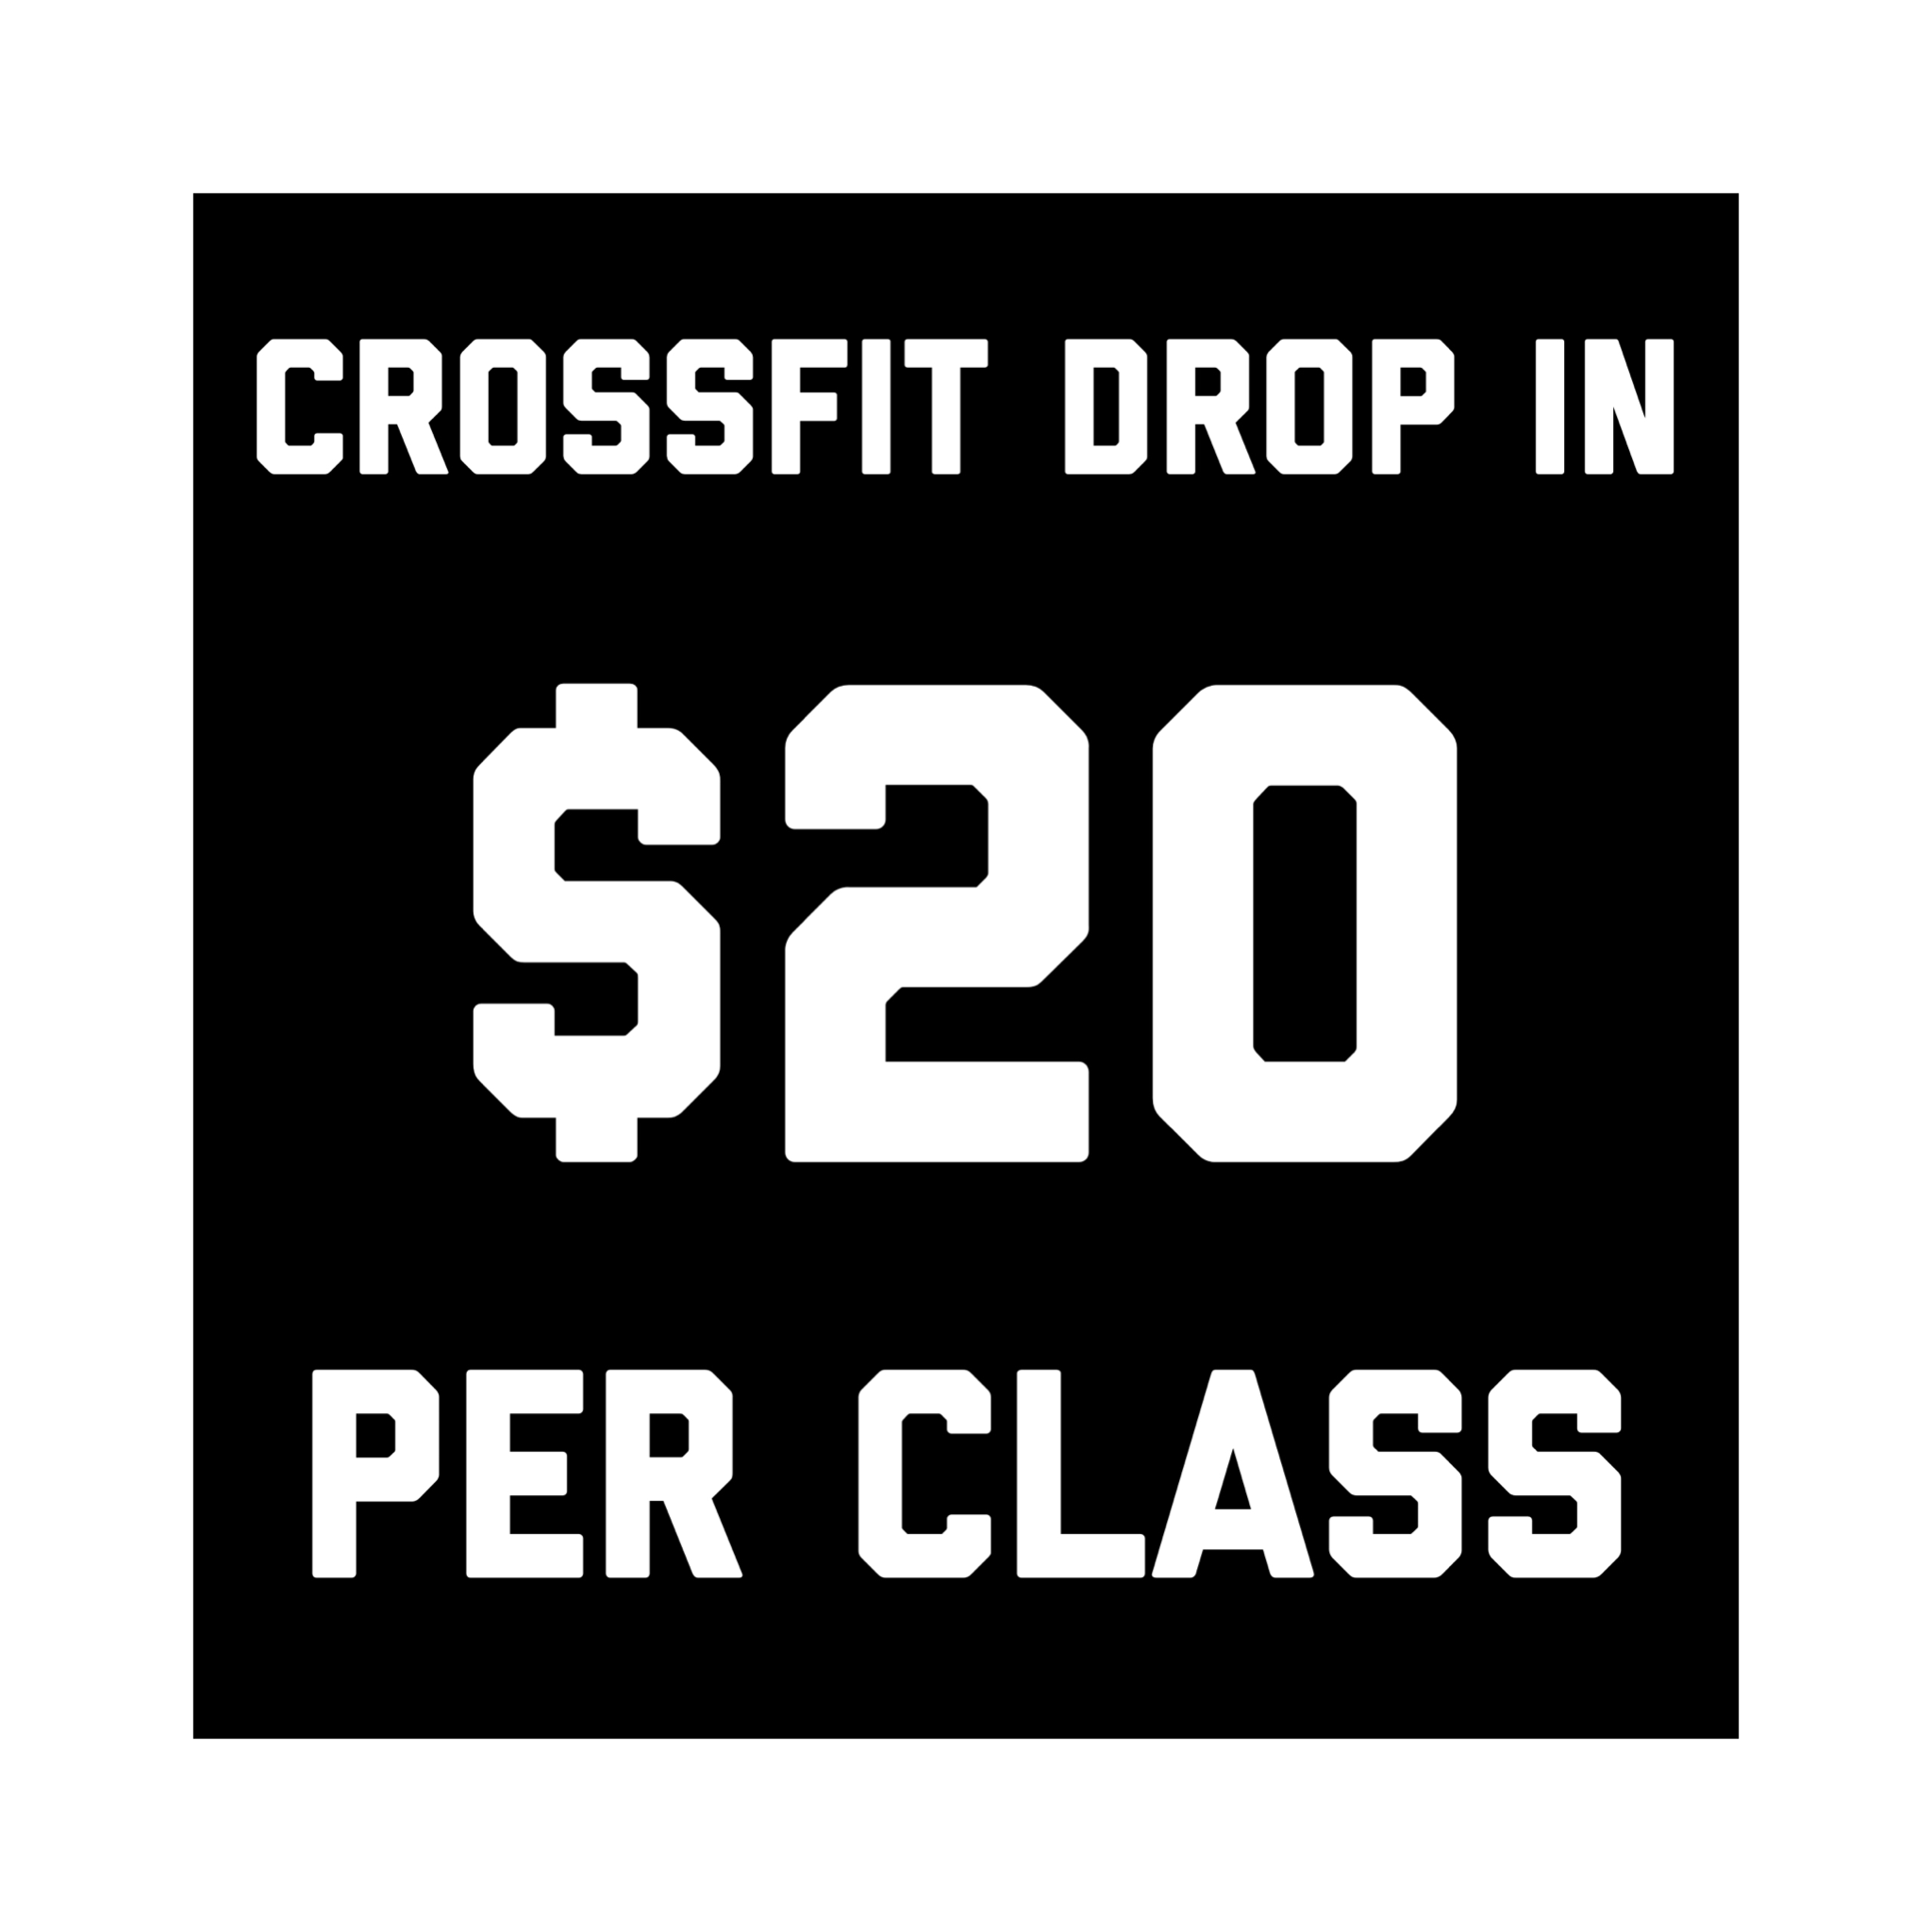 CrossFit Collective CrossFit Drop-In Price